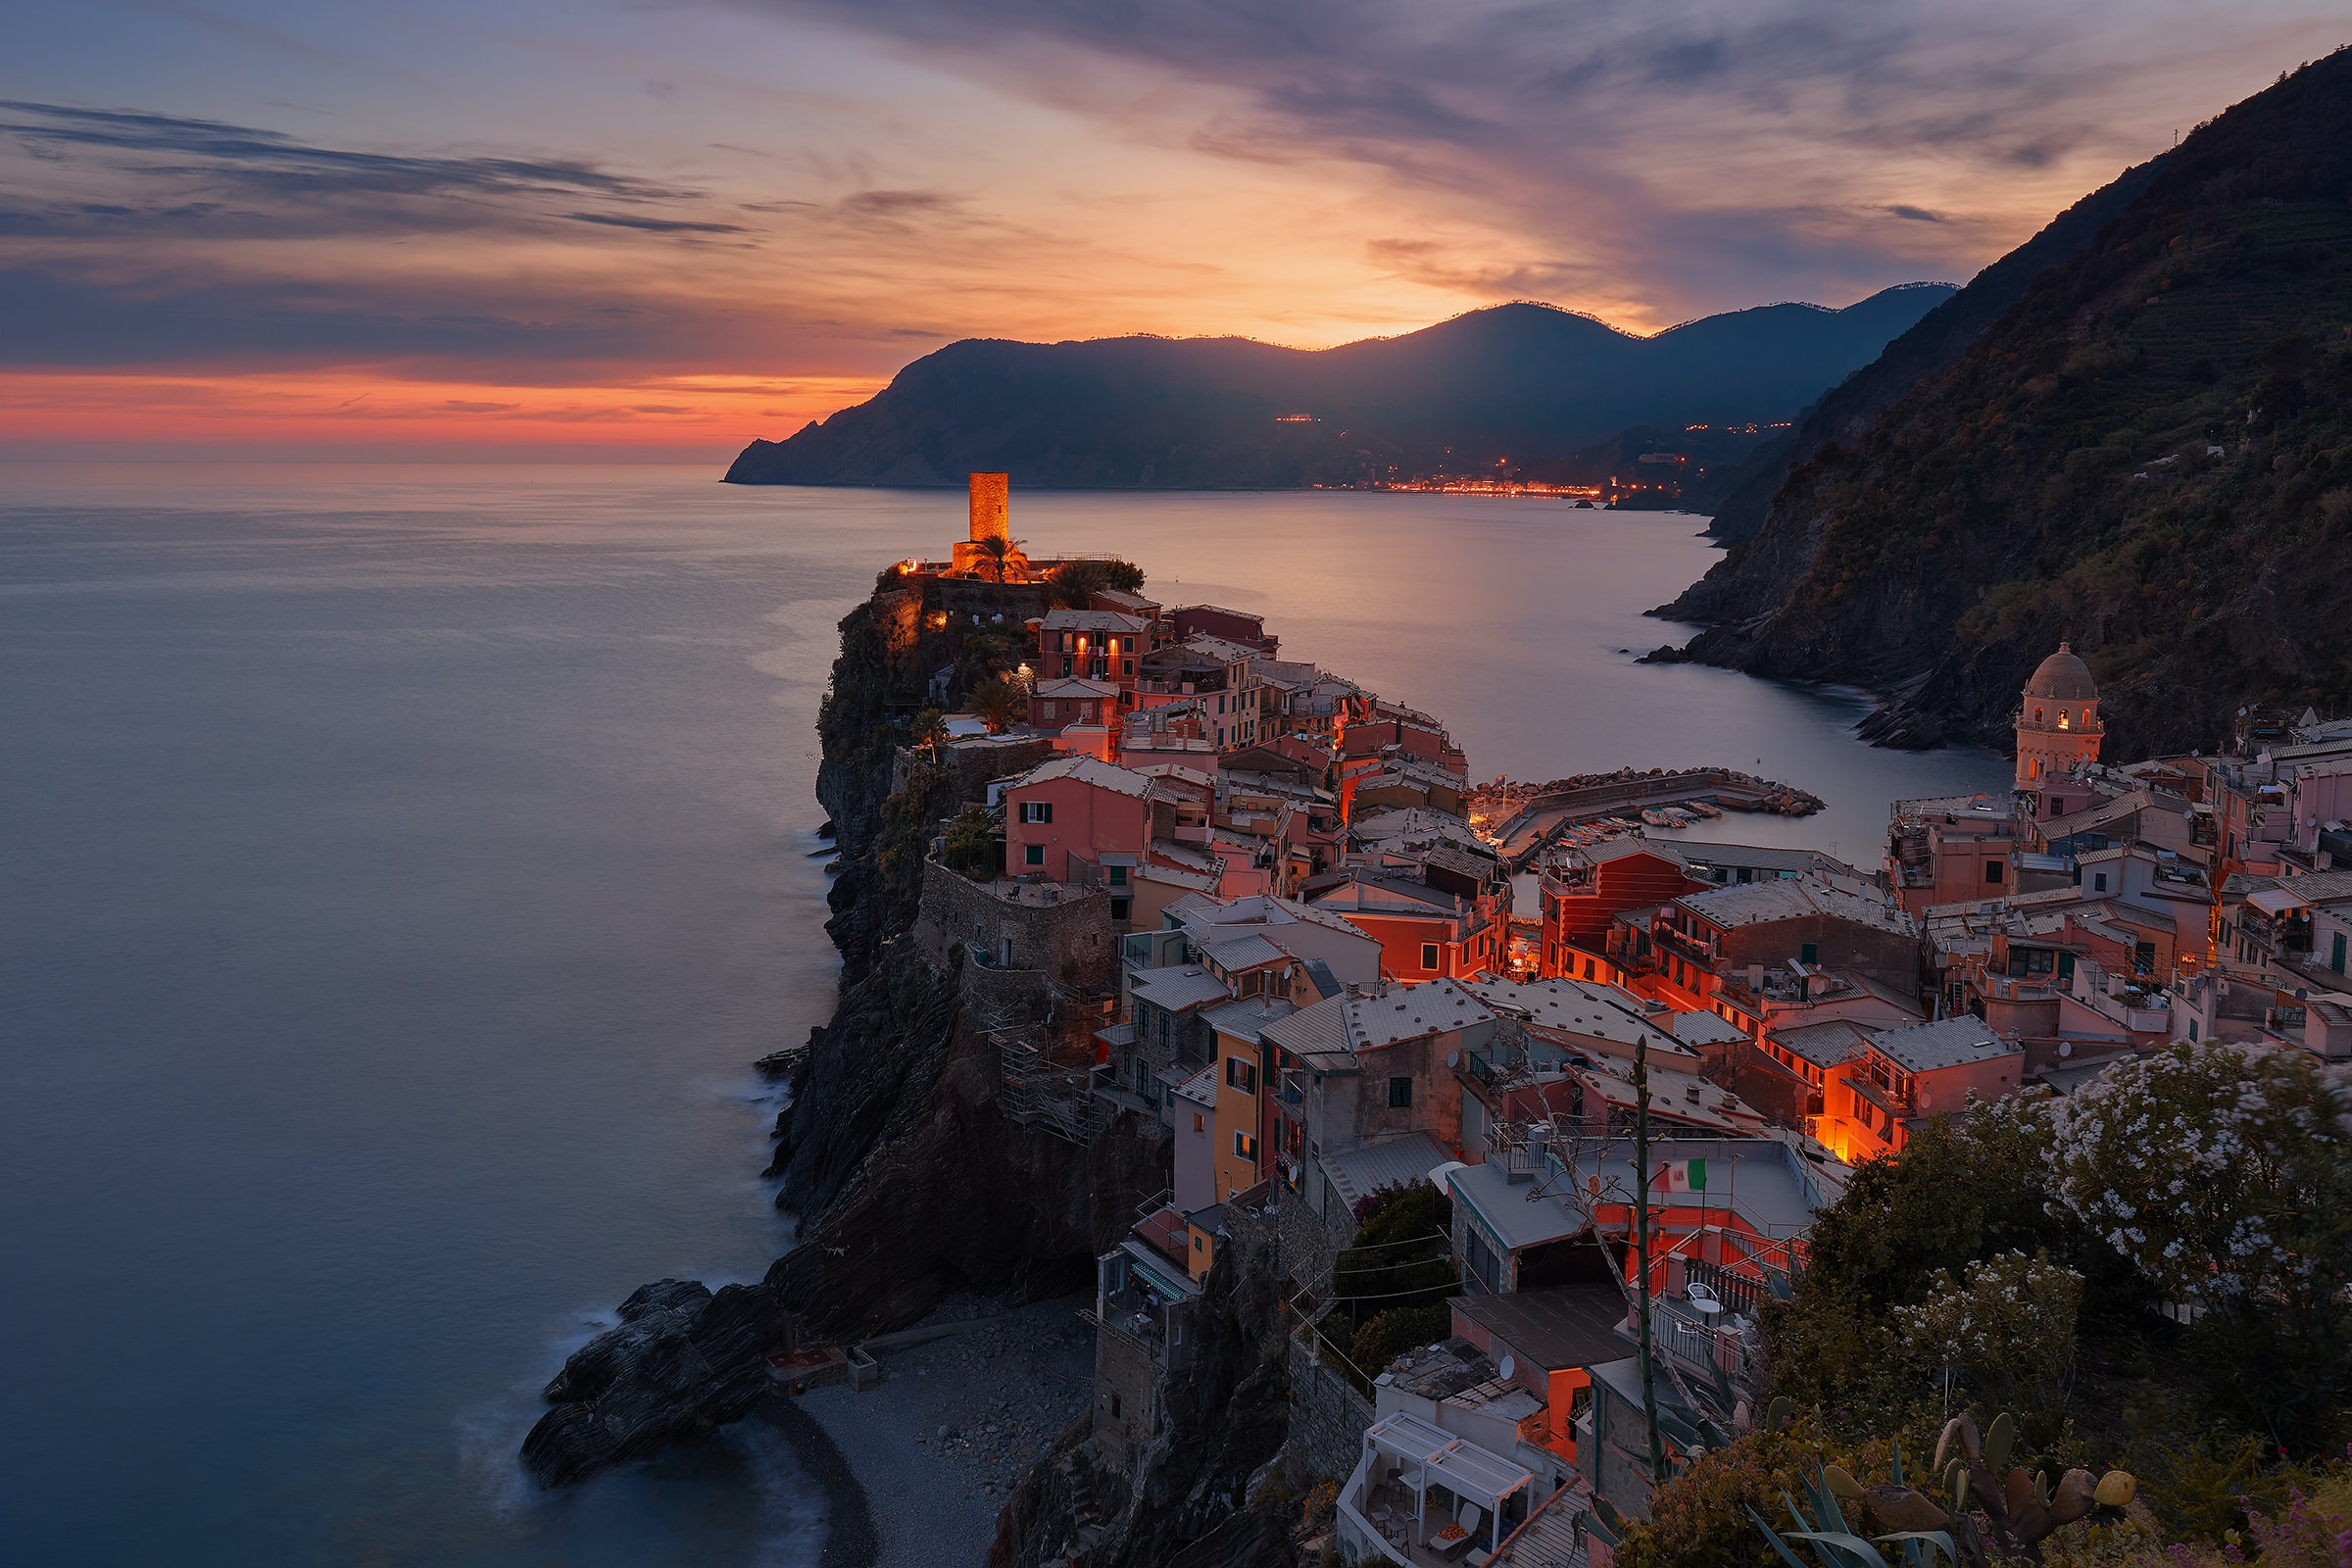 Coastal town of Vernazza in Italy, its buildings glowing orange as the sun sets behind a mountain